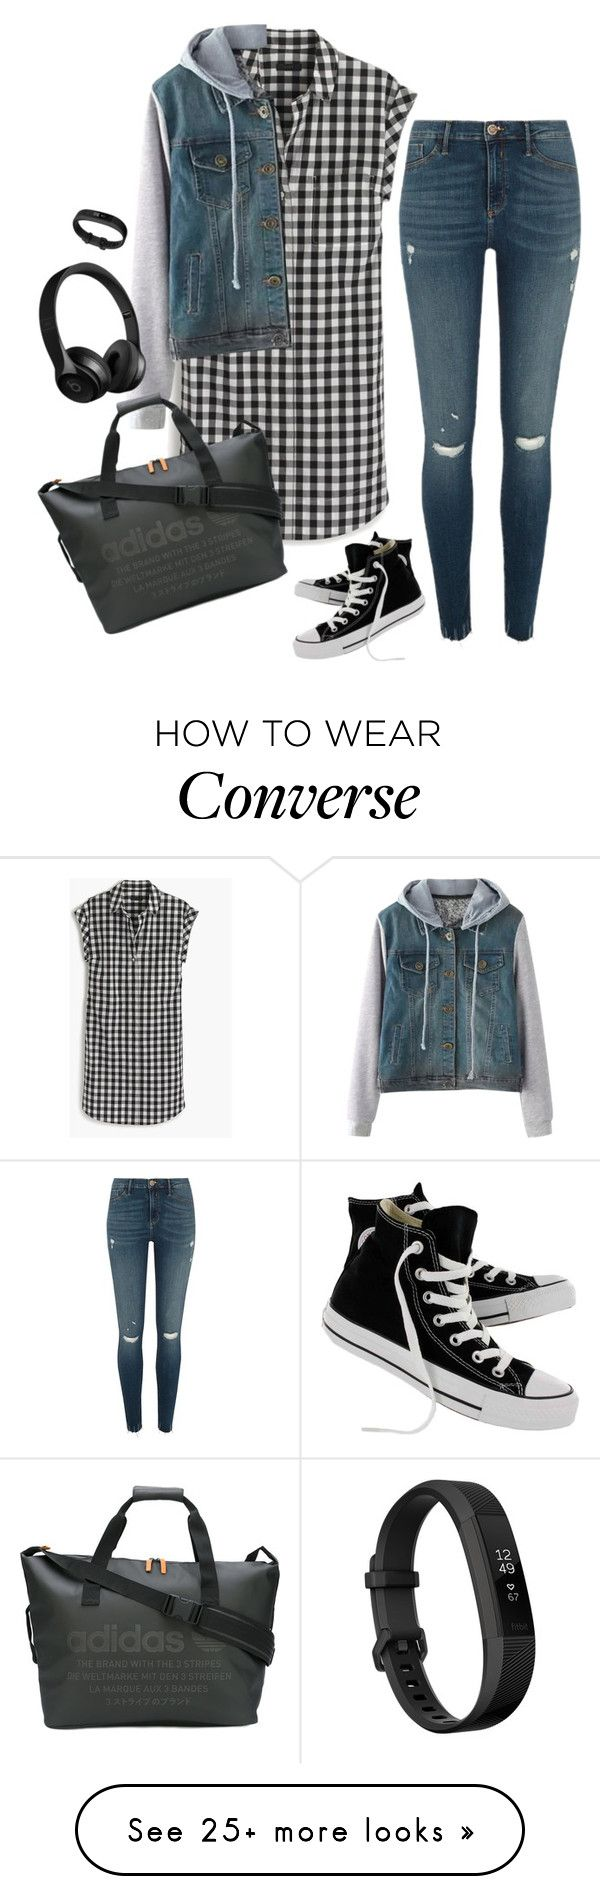 """casual sporty gingham dress"" by momoheart on Polyvore featuring Converse, River Island, adidas and Fitbit"